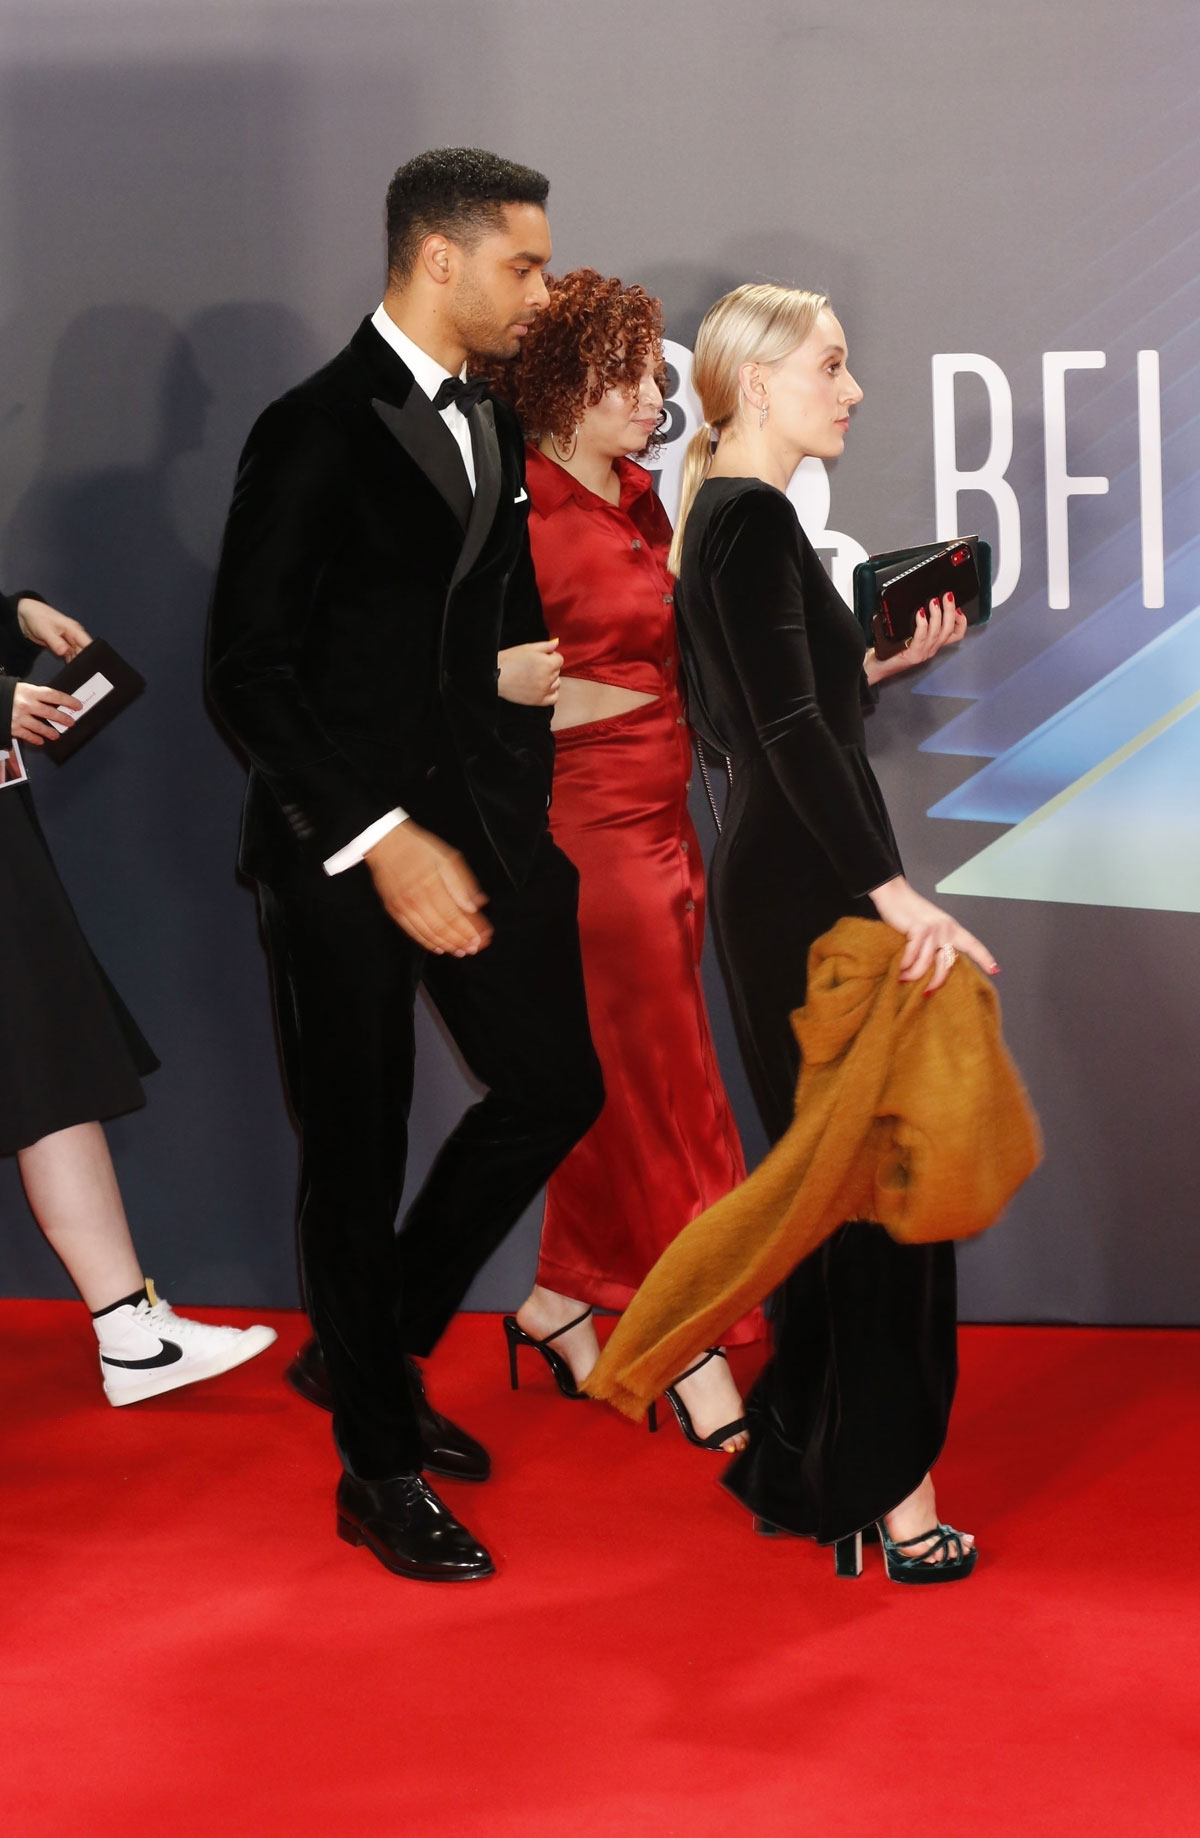 Rege-Jean Page brought his girlfriend to the BFI Festival but they didn't pose together